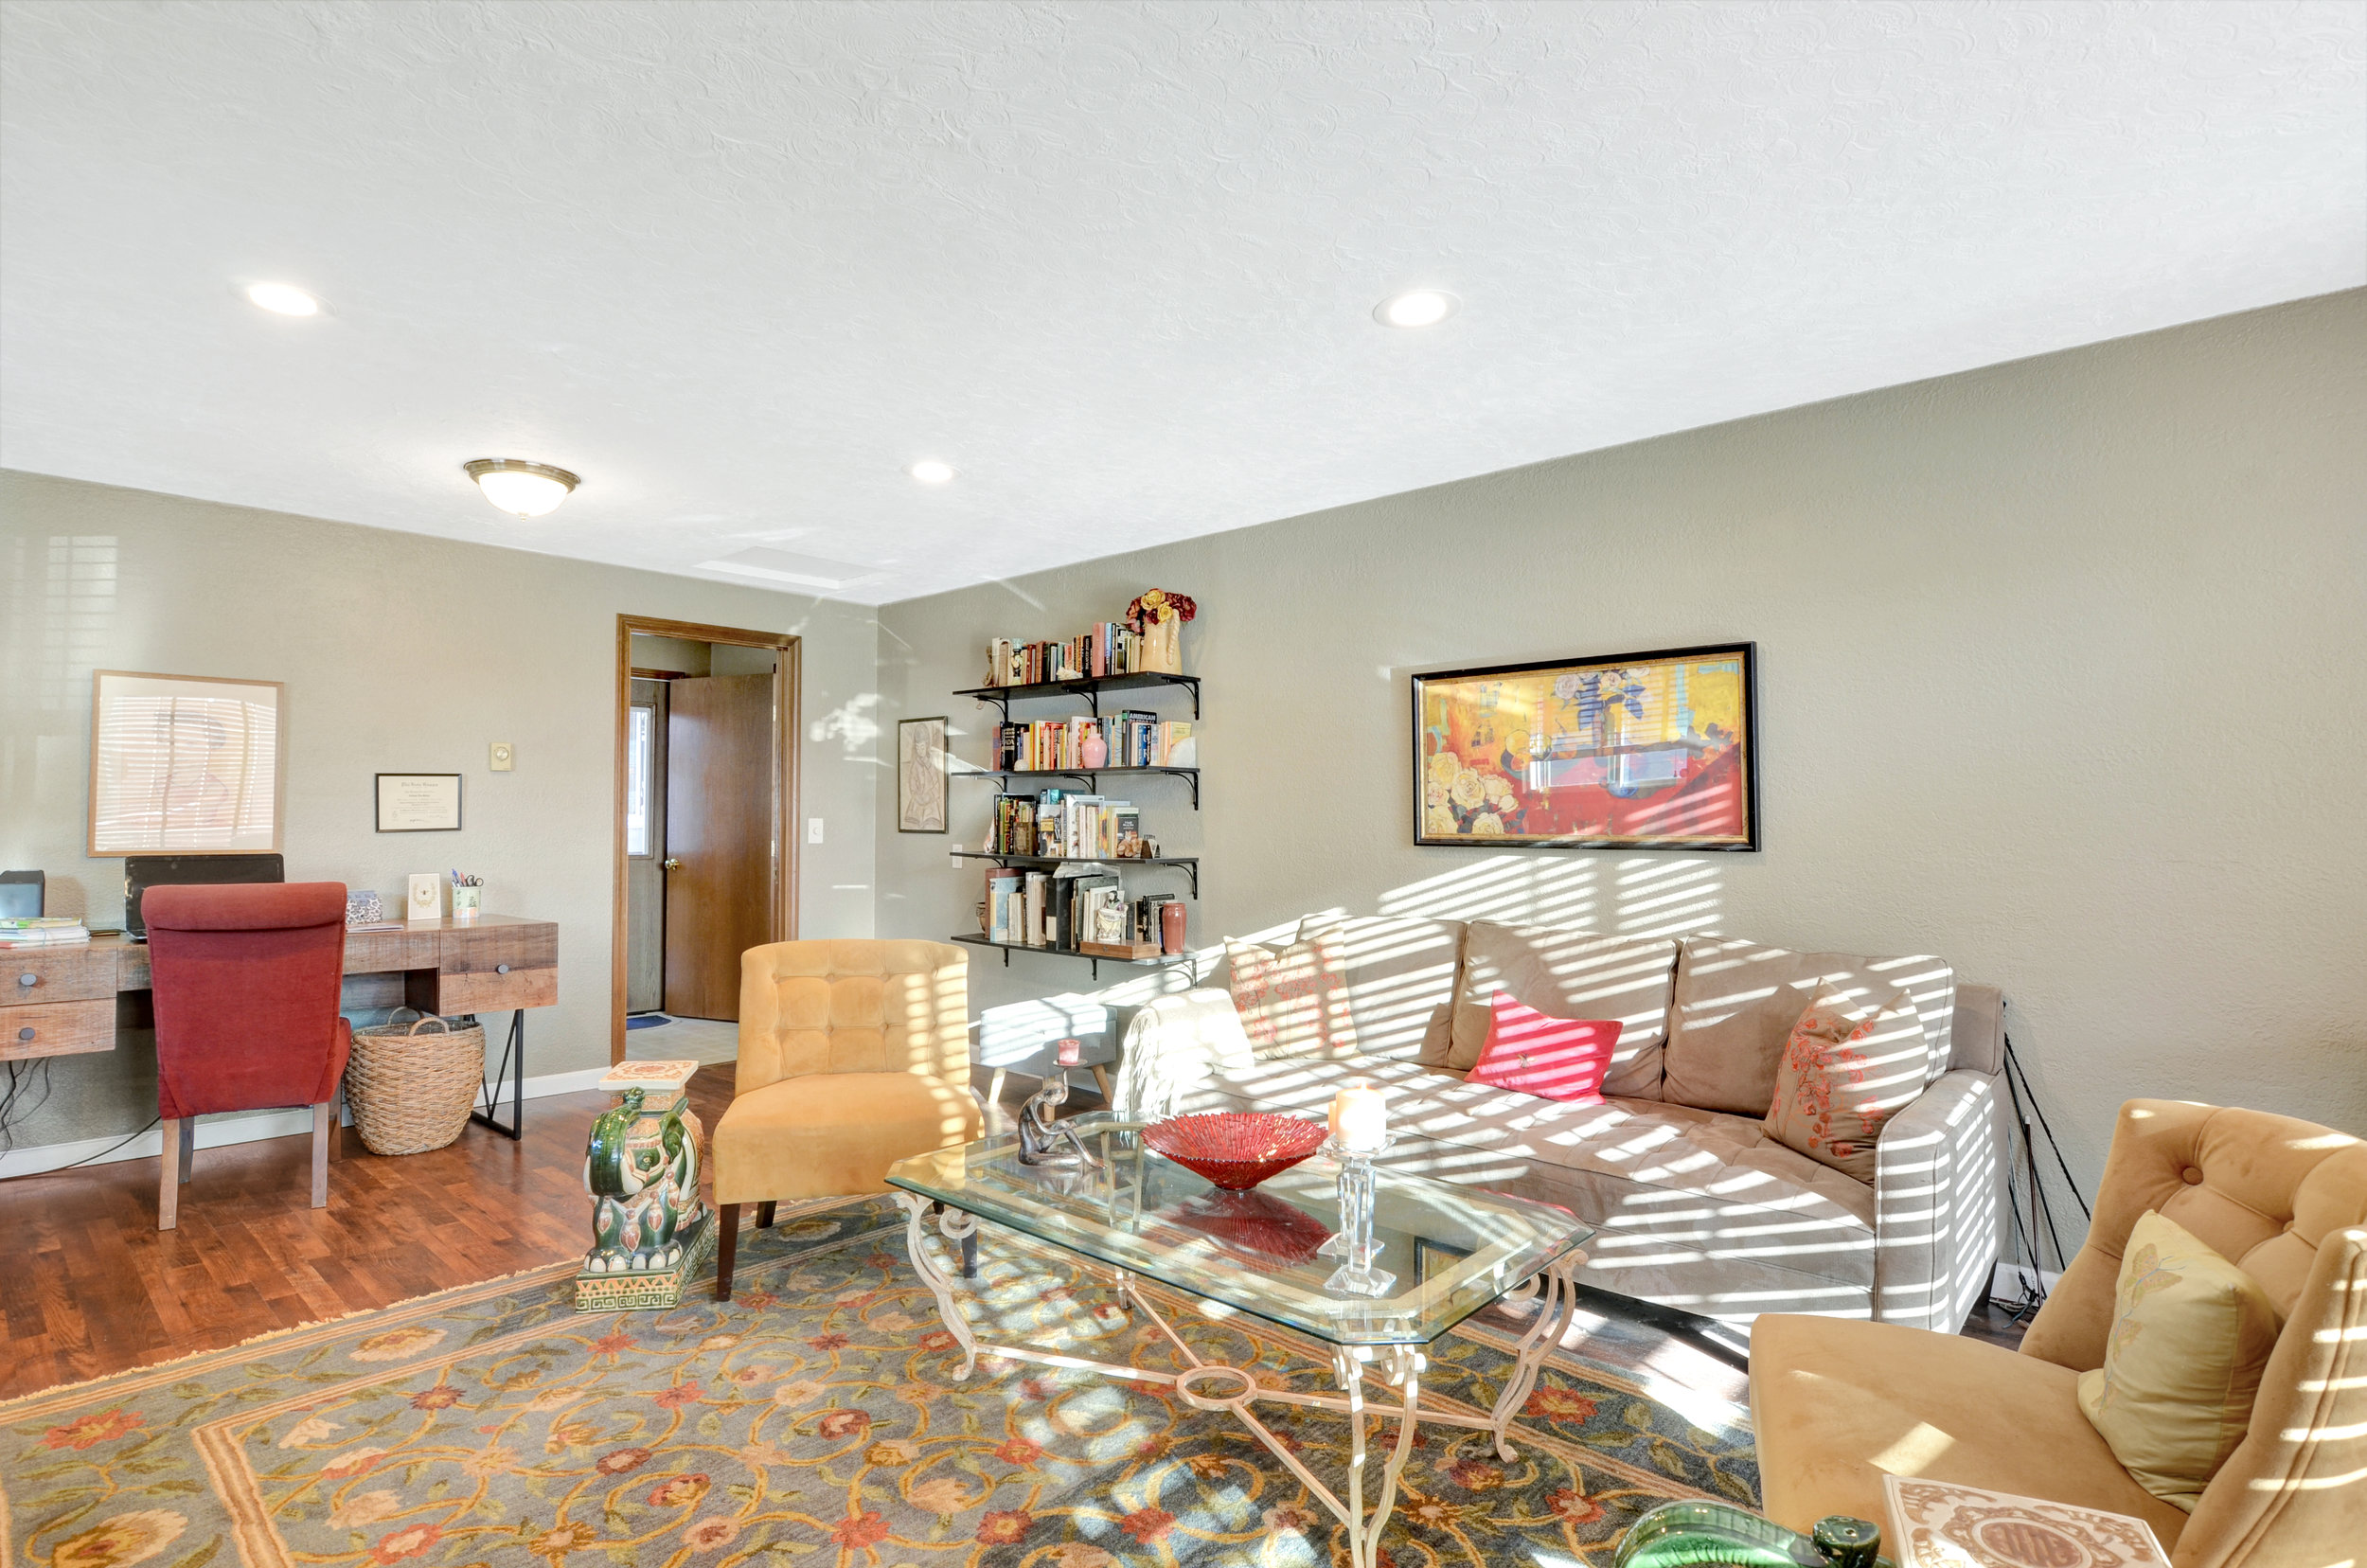 Design this room as a traditional family room for reading, playing games, and watching movies, or set up a home office, studio, or exercise area.